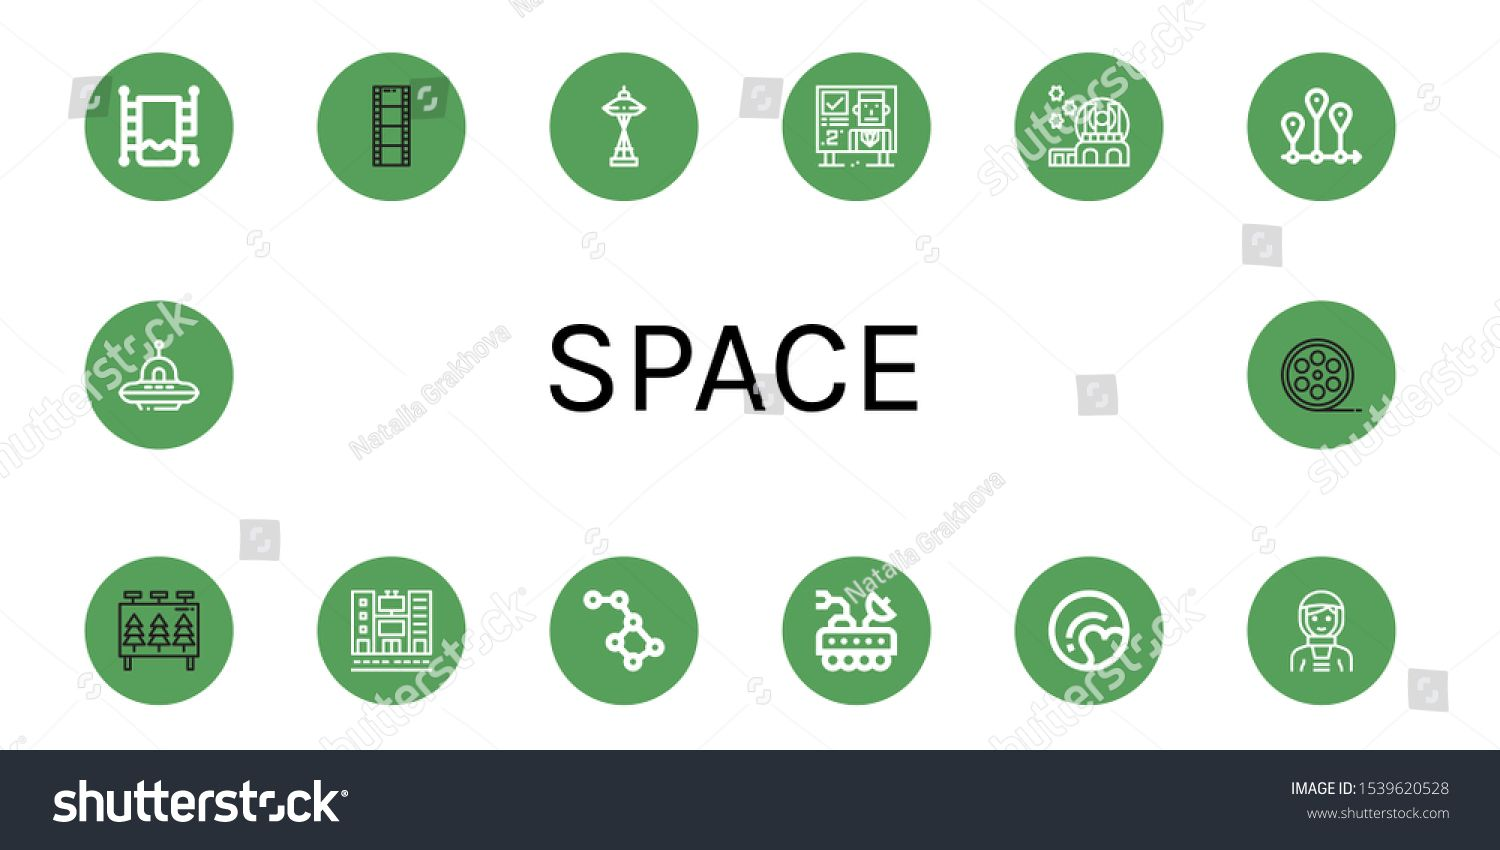 space icon set. Collection of Heated towel rail, Film roll, Space needle, Billboard, Observatory, Timeline, Conste #Sponsored , #ad, #rail#towel#Film#Space